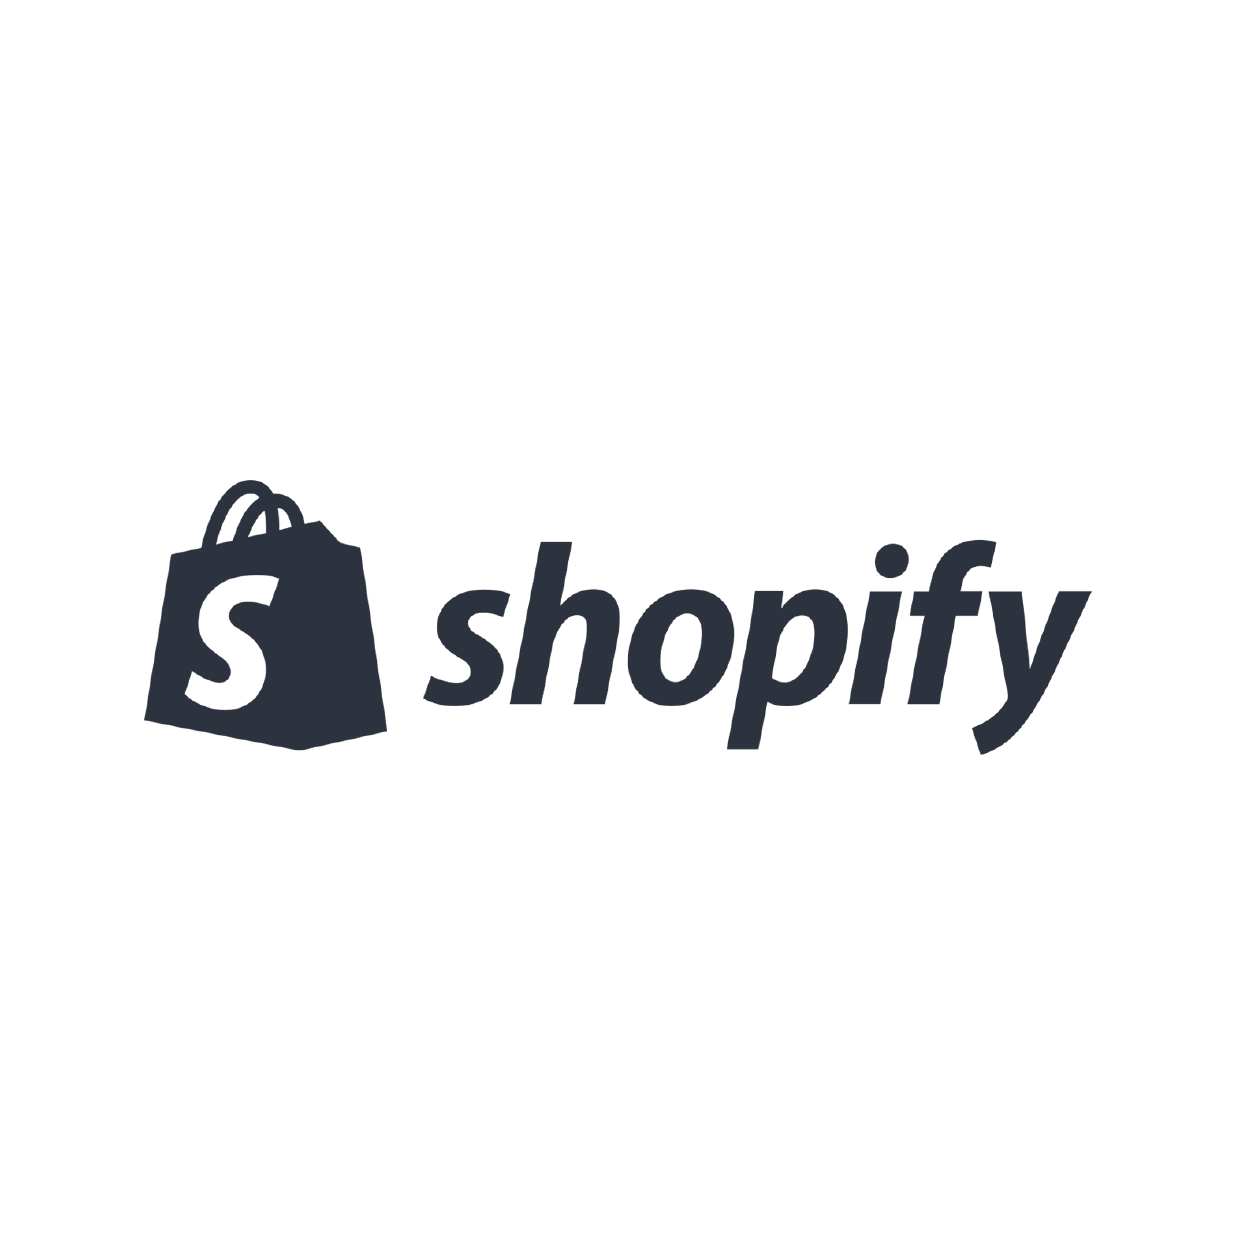 shopify-01.png